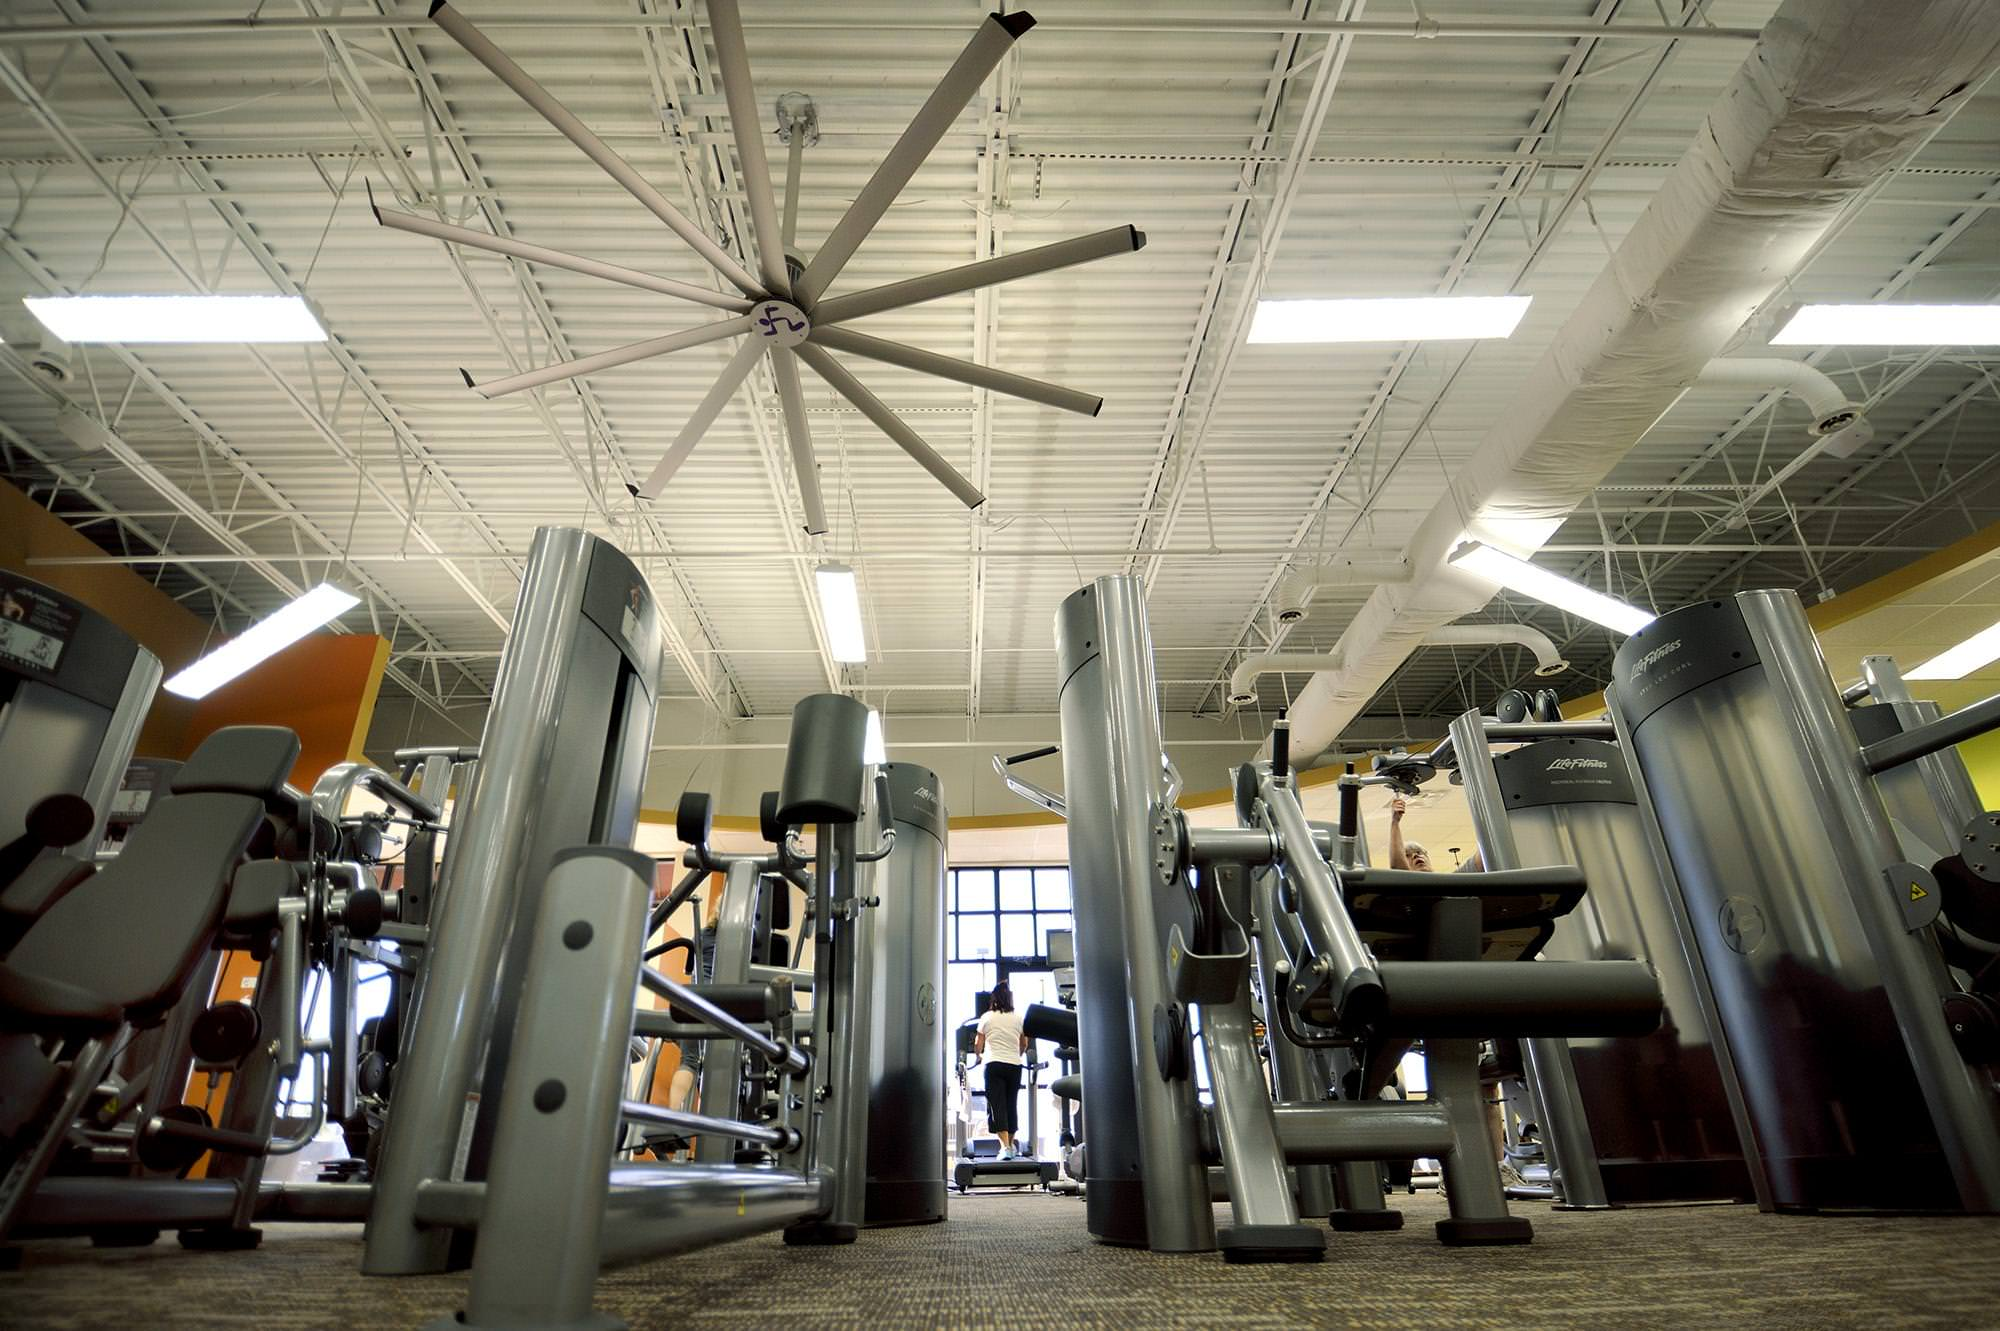 Industrial gym fans from big ass fans keep athletes comfortable